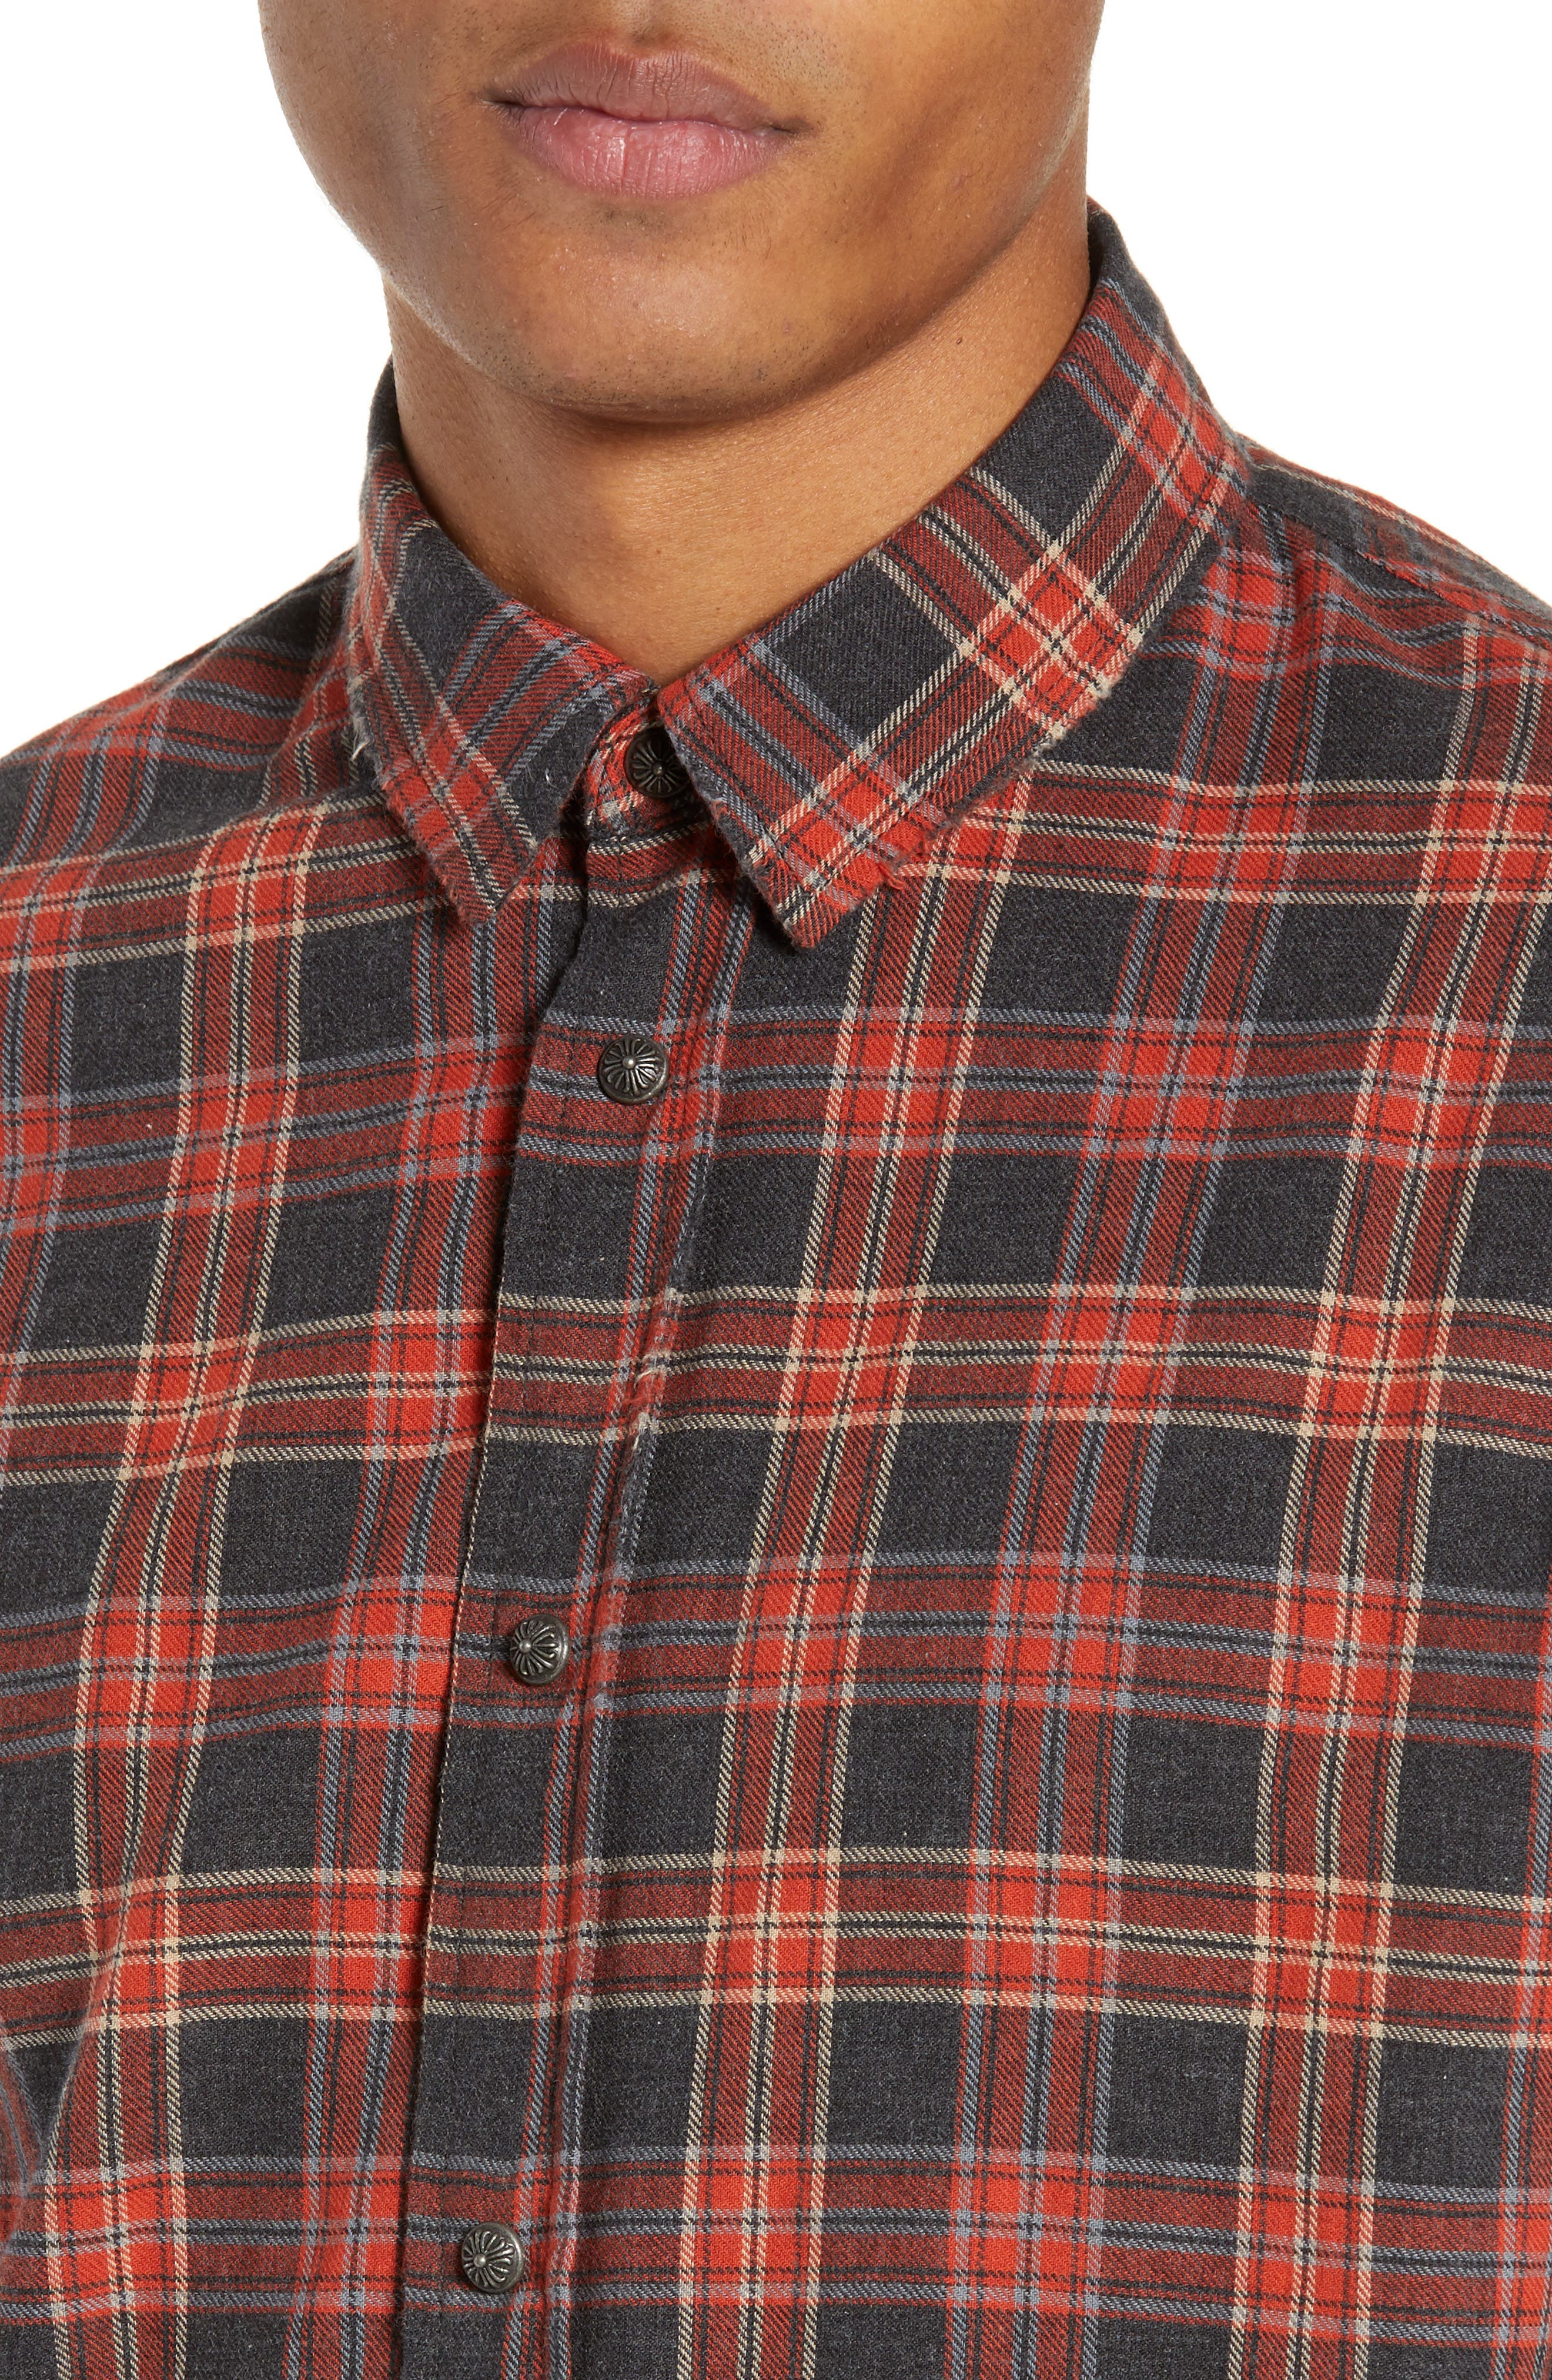 THE KOOPLES, Plaid Regular Fit Flannel Shirt, Alternate thumbnail 2, color, 800